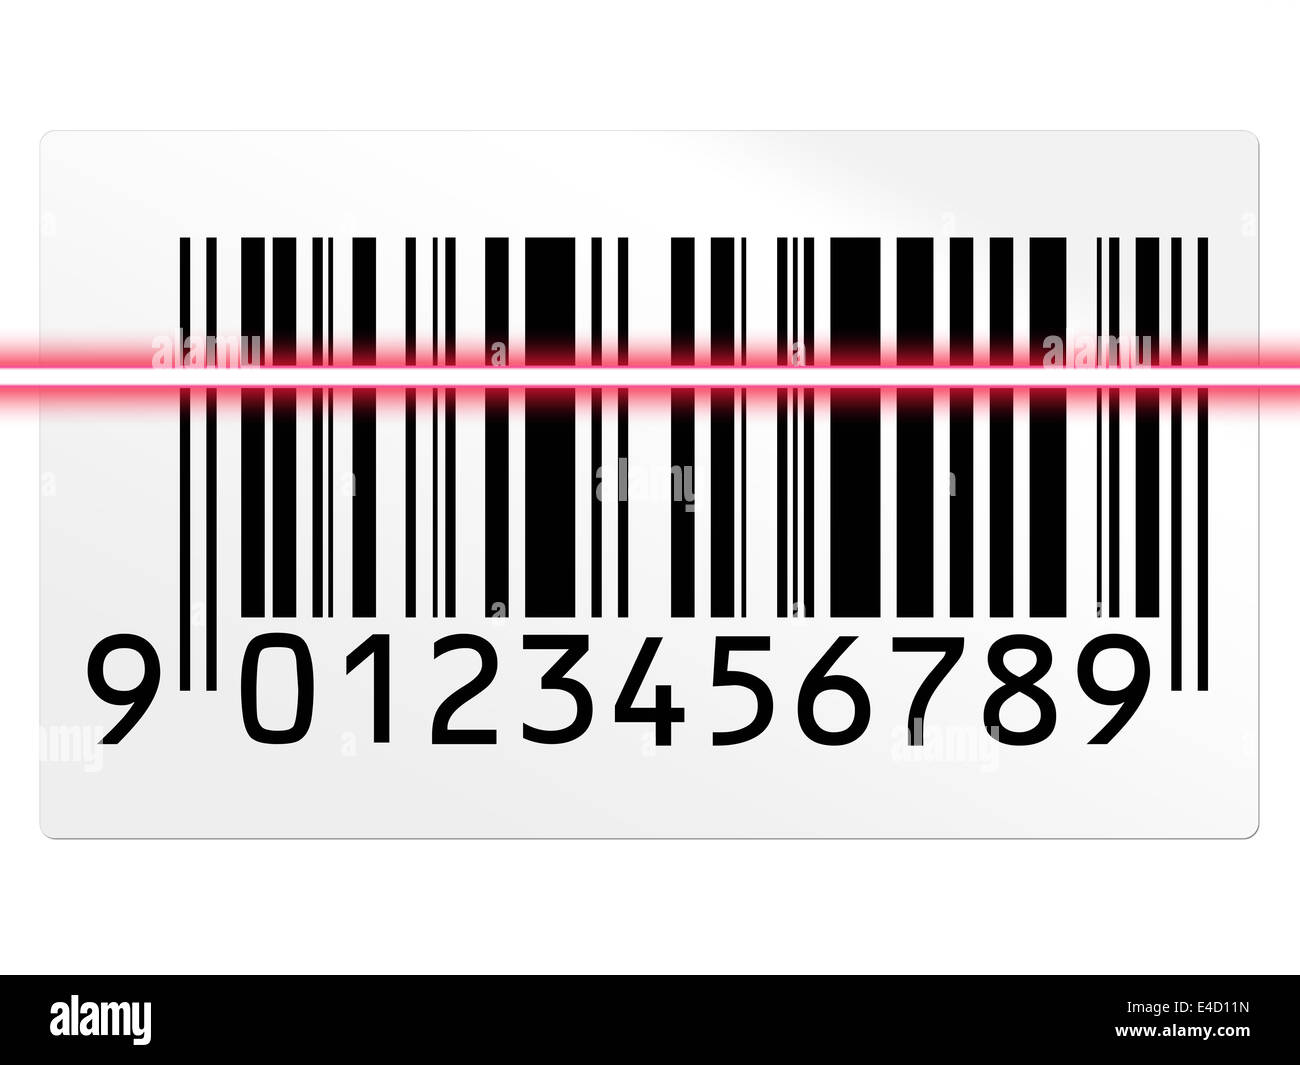 barcode scan - Stock Image